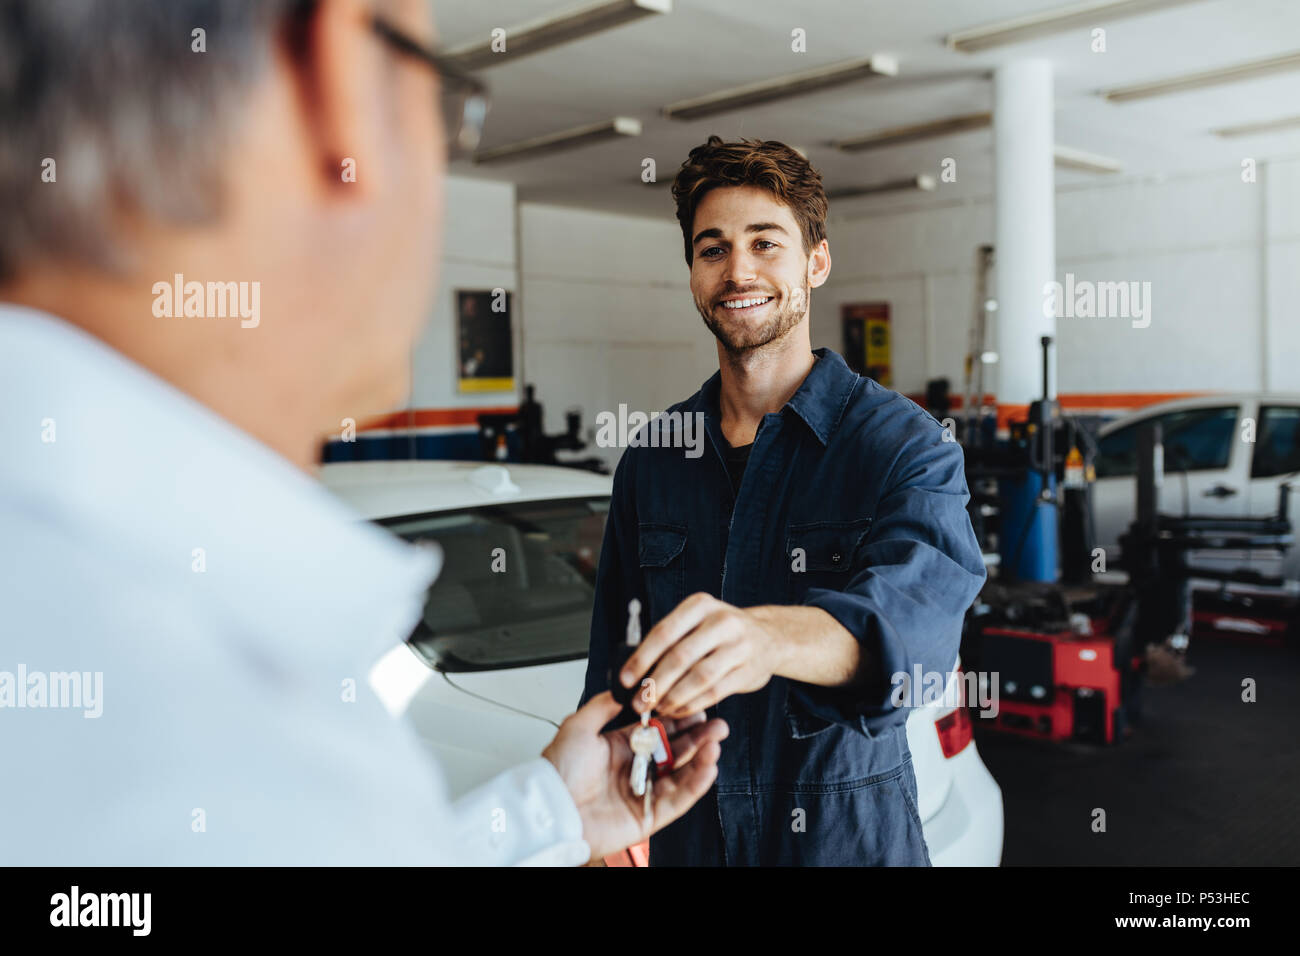 Car mechanic passing car keys to the car owner after repairing his vehicle. Mechanic giving car key to customer after servicing at garage. - Stock Image